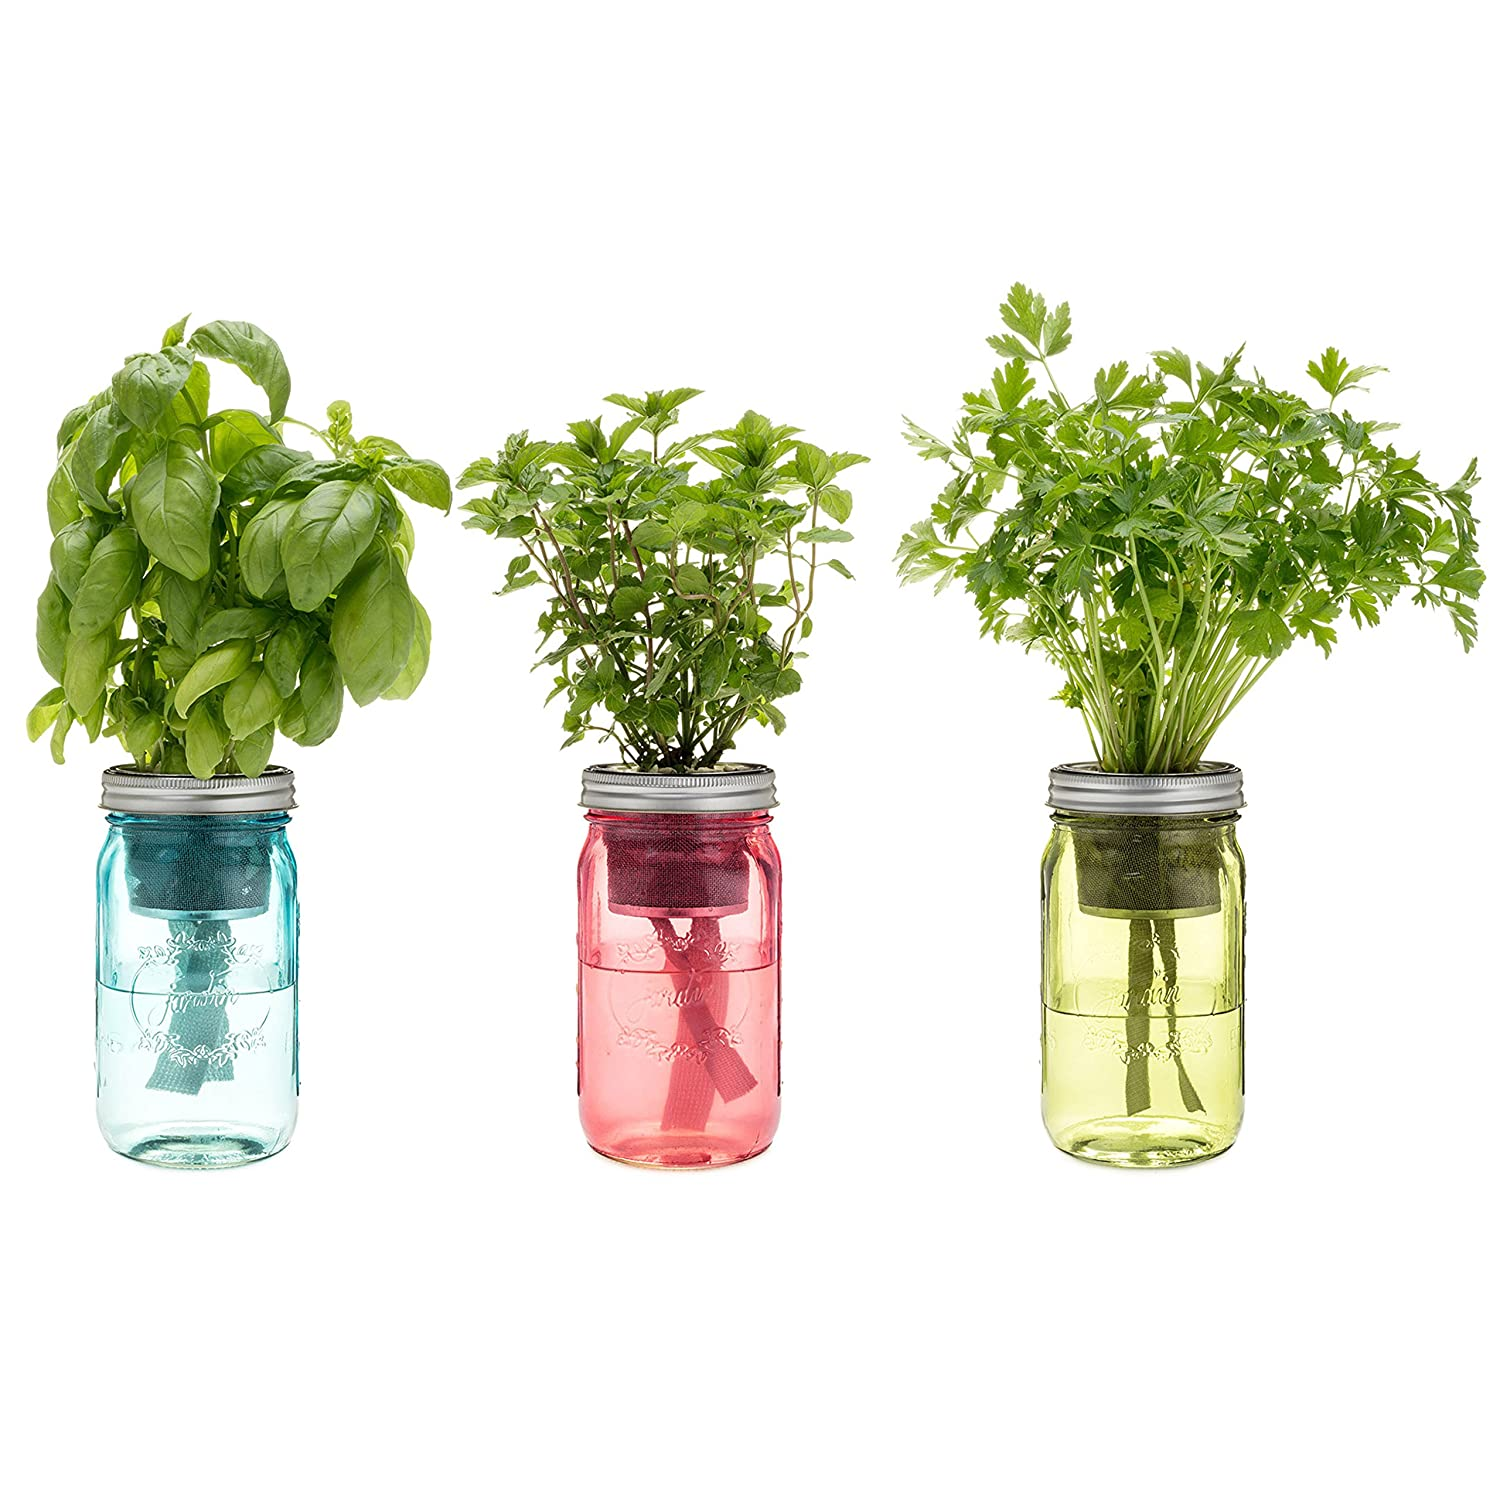 Amazon.com : Kitchen Herb Kit   Three Self Watering Indoor Planters With  Organic Basil, Organic Parsley, And Non Gmo Mint Seeds. : Garden U0026 Outdoor